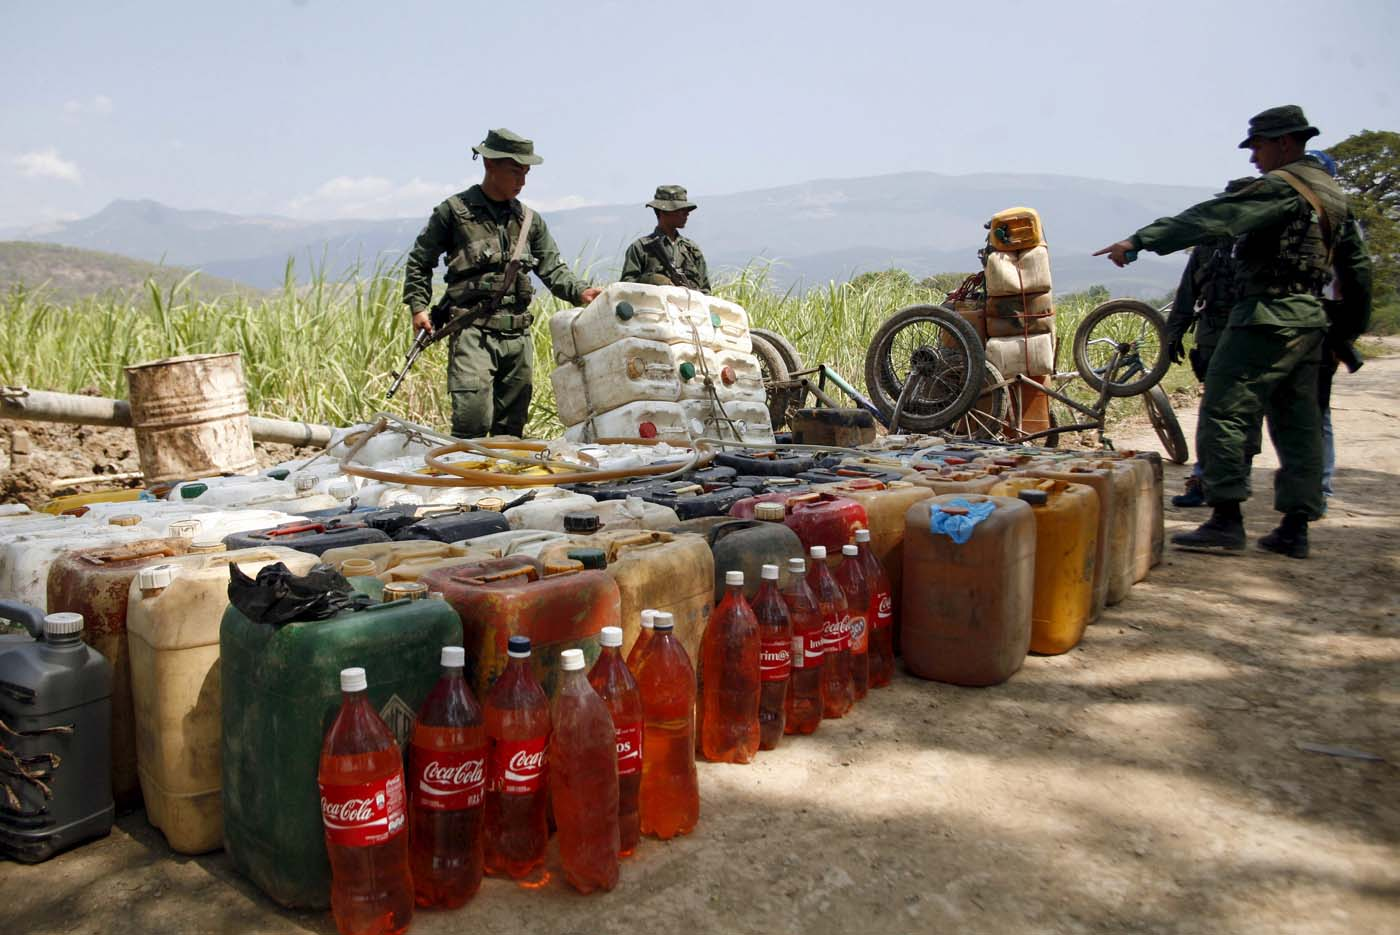 Venezuelan soldiers collect containers with gasoline abandoned by smugglers near the Colombian border in San Antonio, in the state of Tachira, February 17, 2016. REUTERS/Carlos Eduardo Ramirez. EDITORIAL USE ONLY. NO RESALES. NO ARCHIVE.